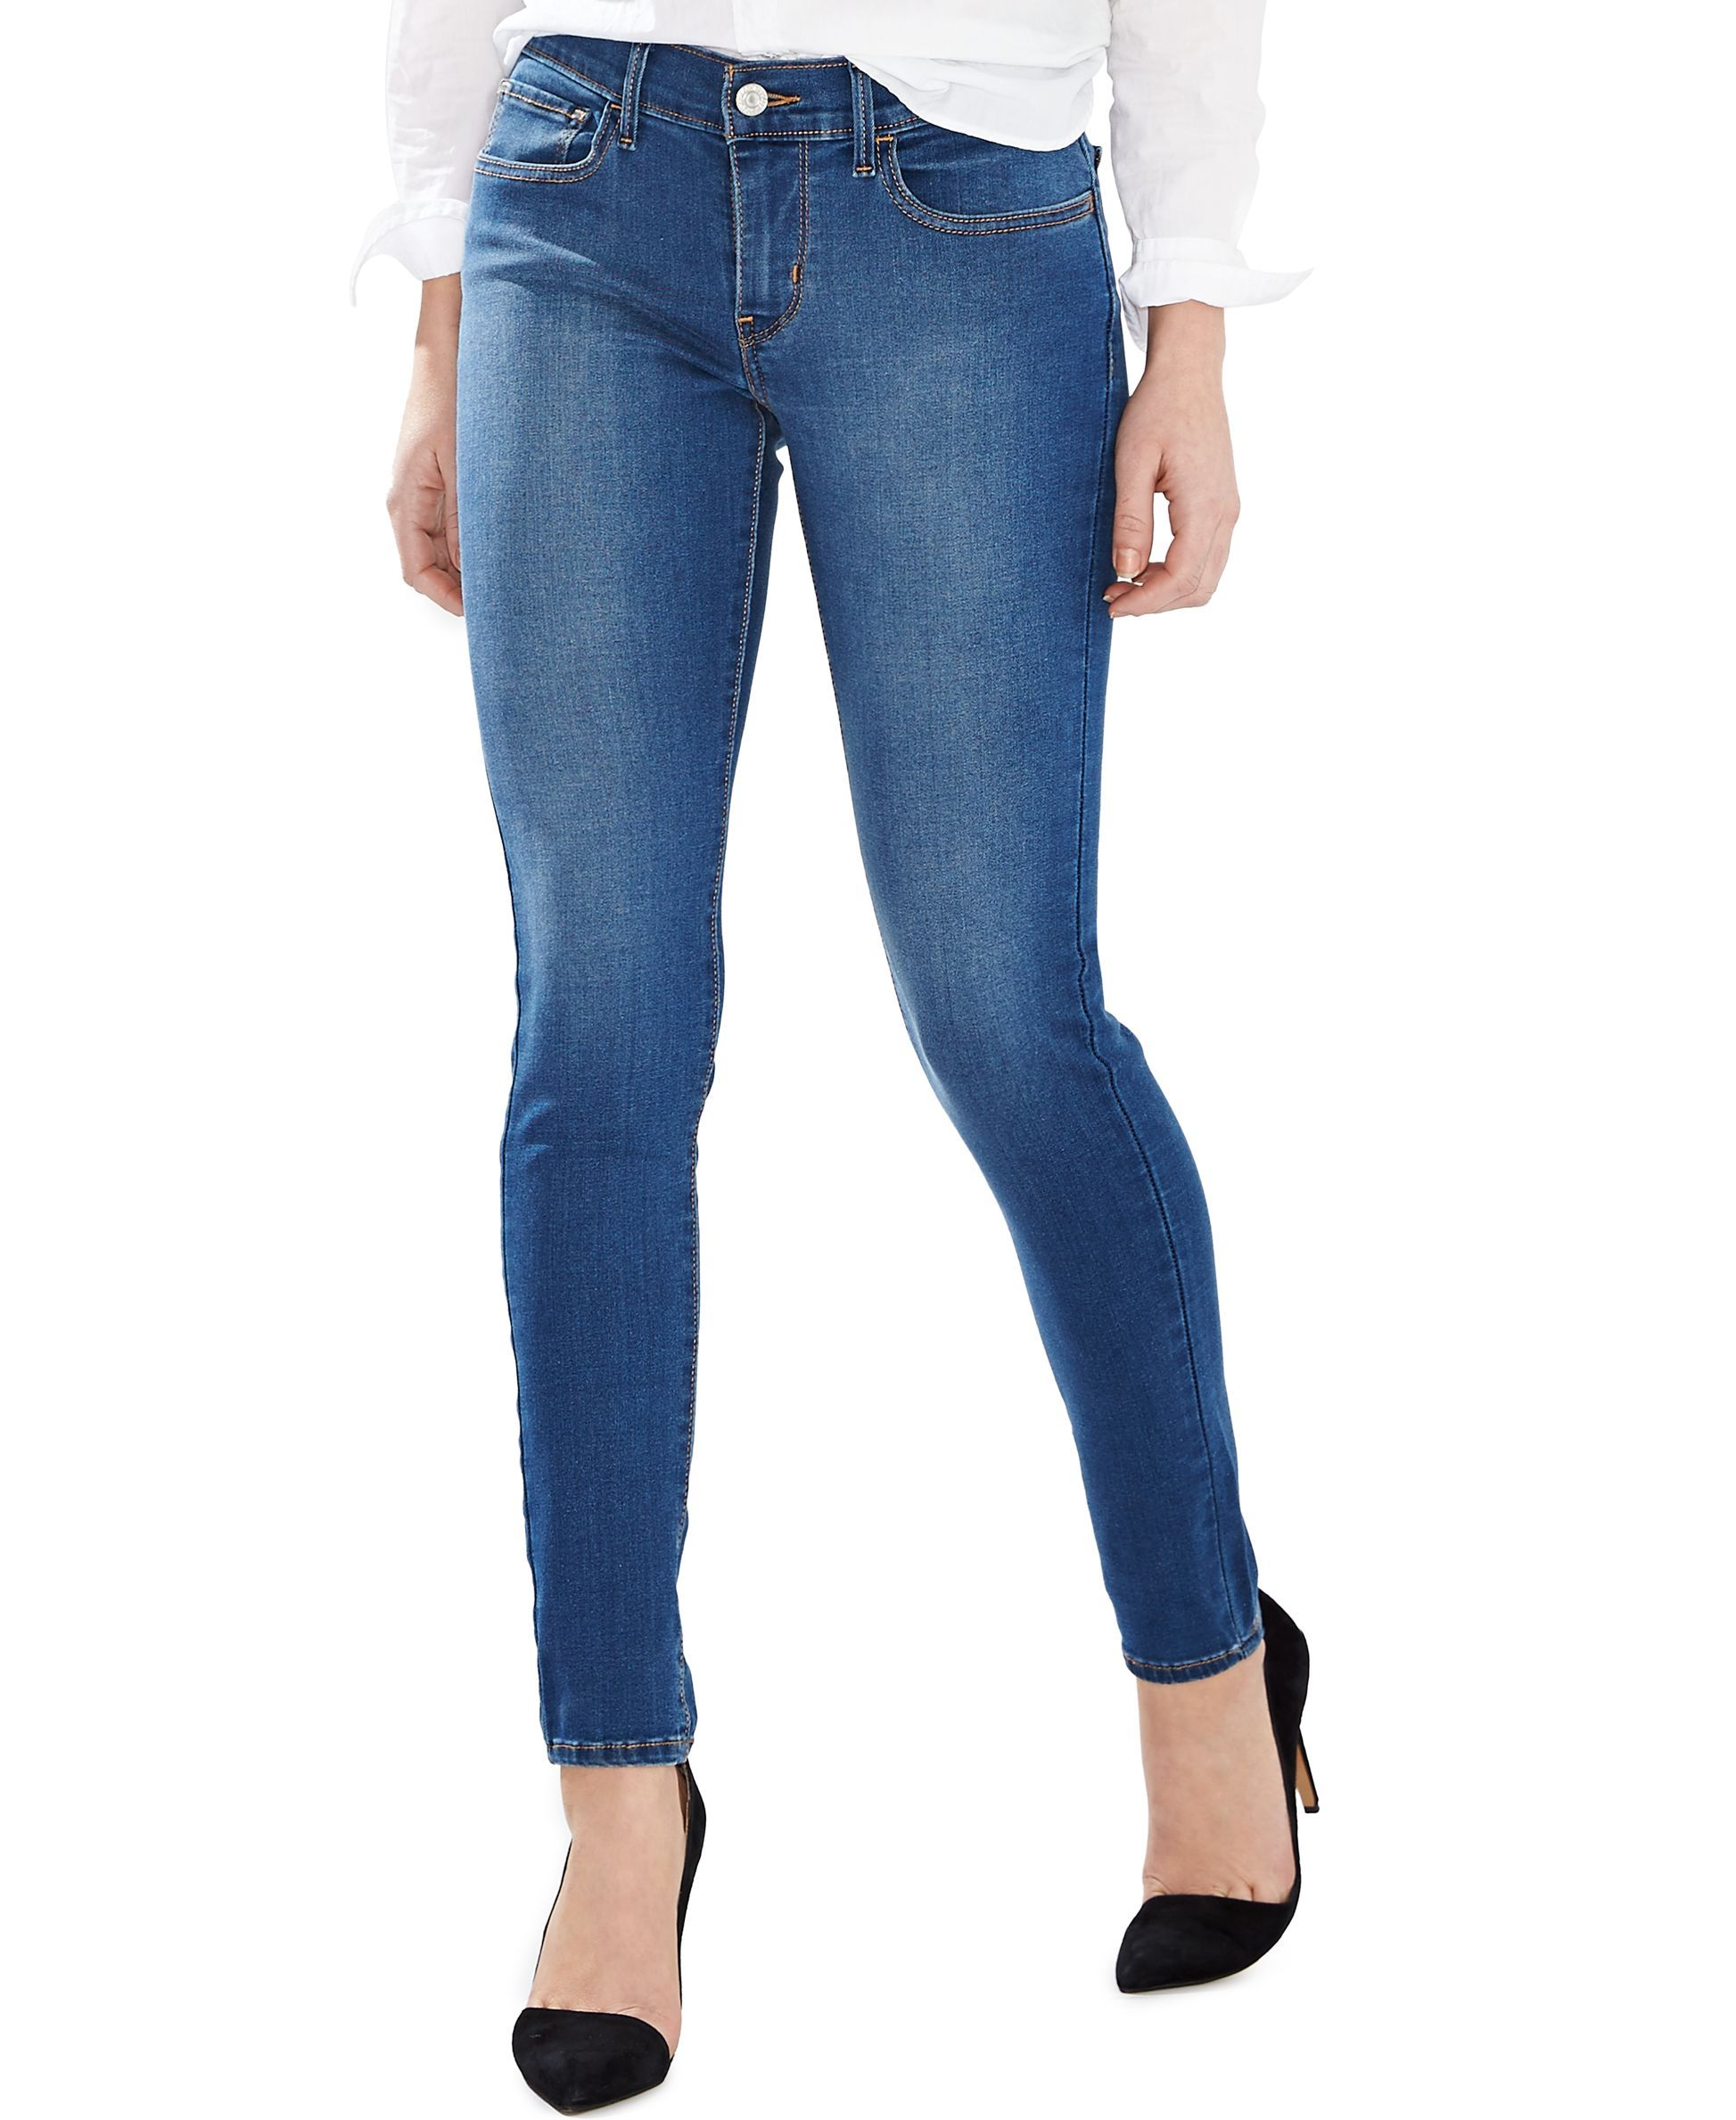 60cf83a057226 Levi's 710 Super Skinny Jeans, Best Days Wash | Products | Super ...